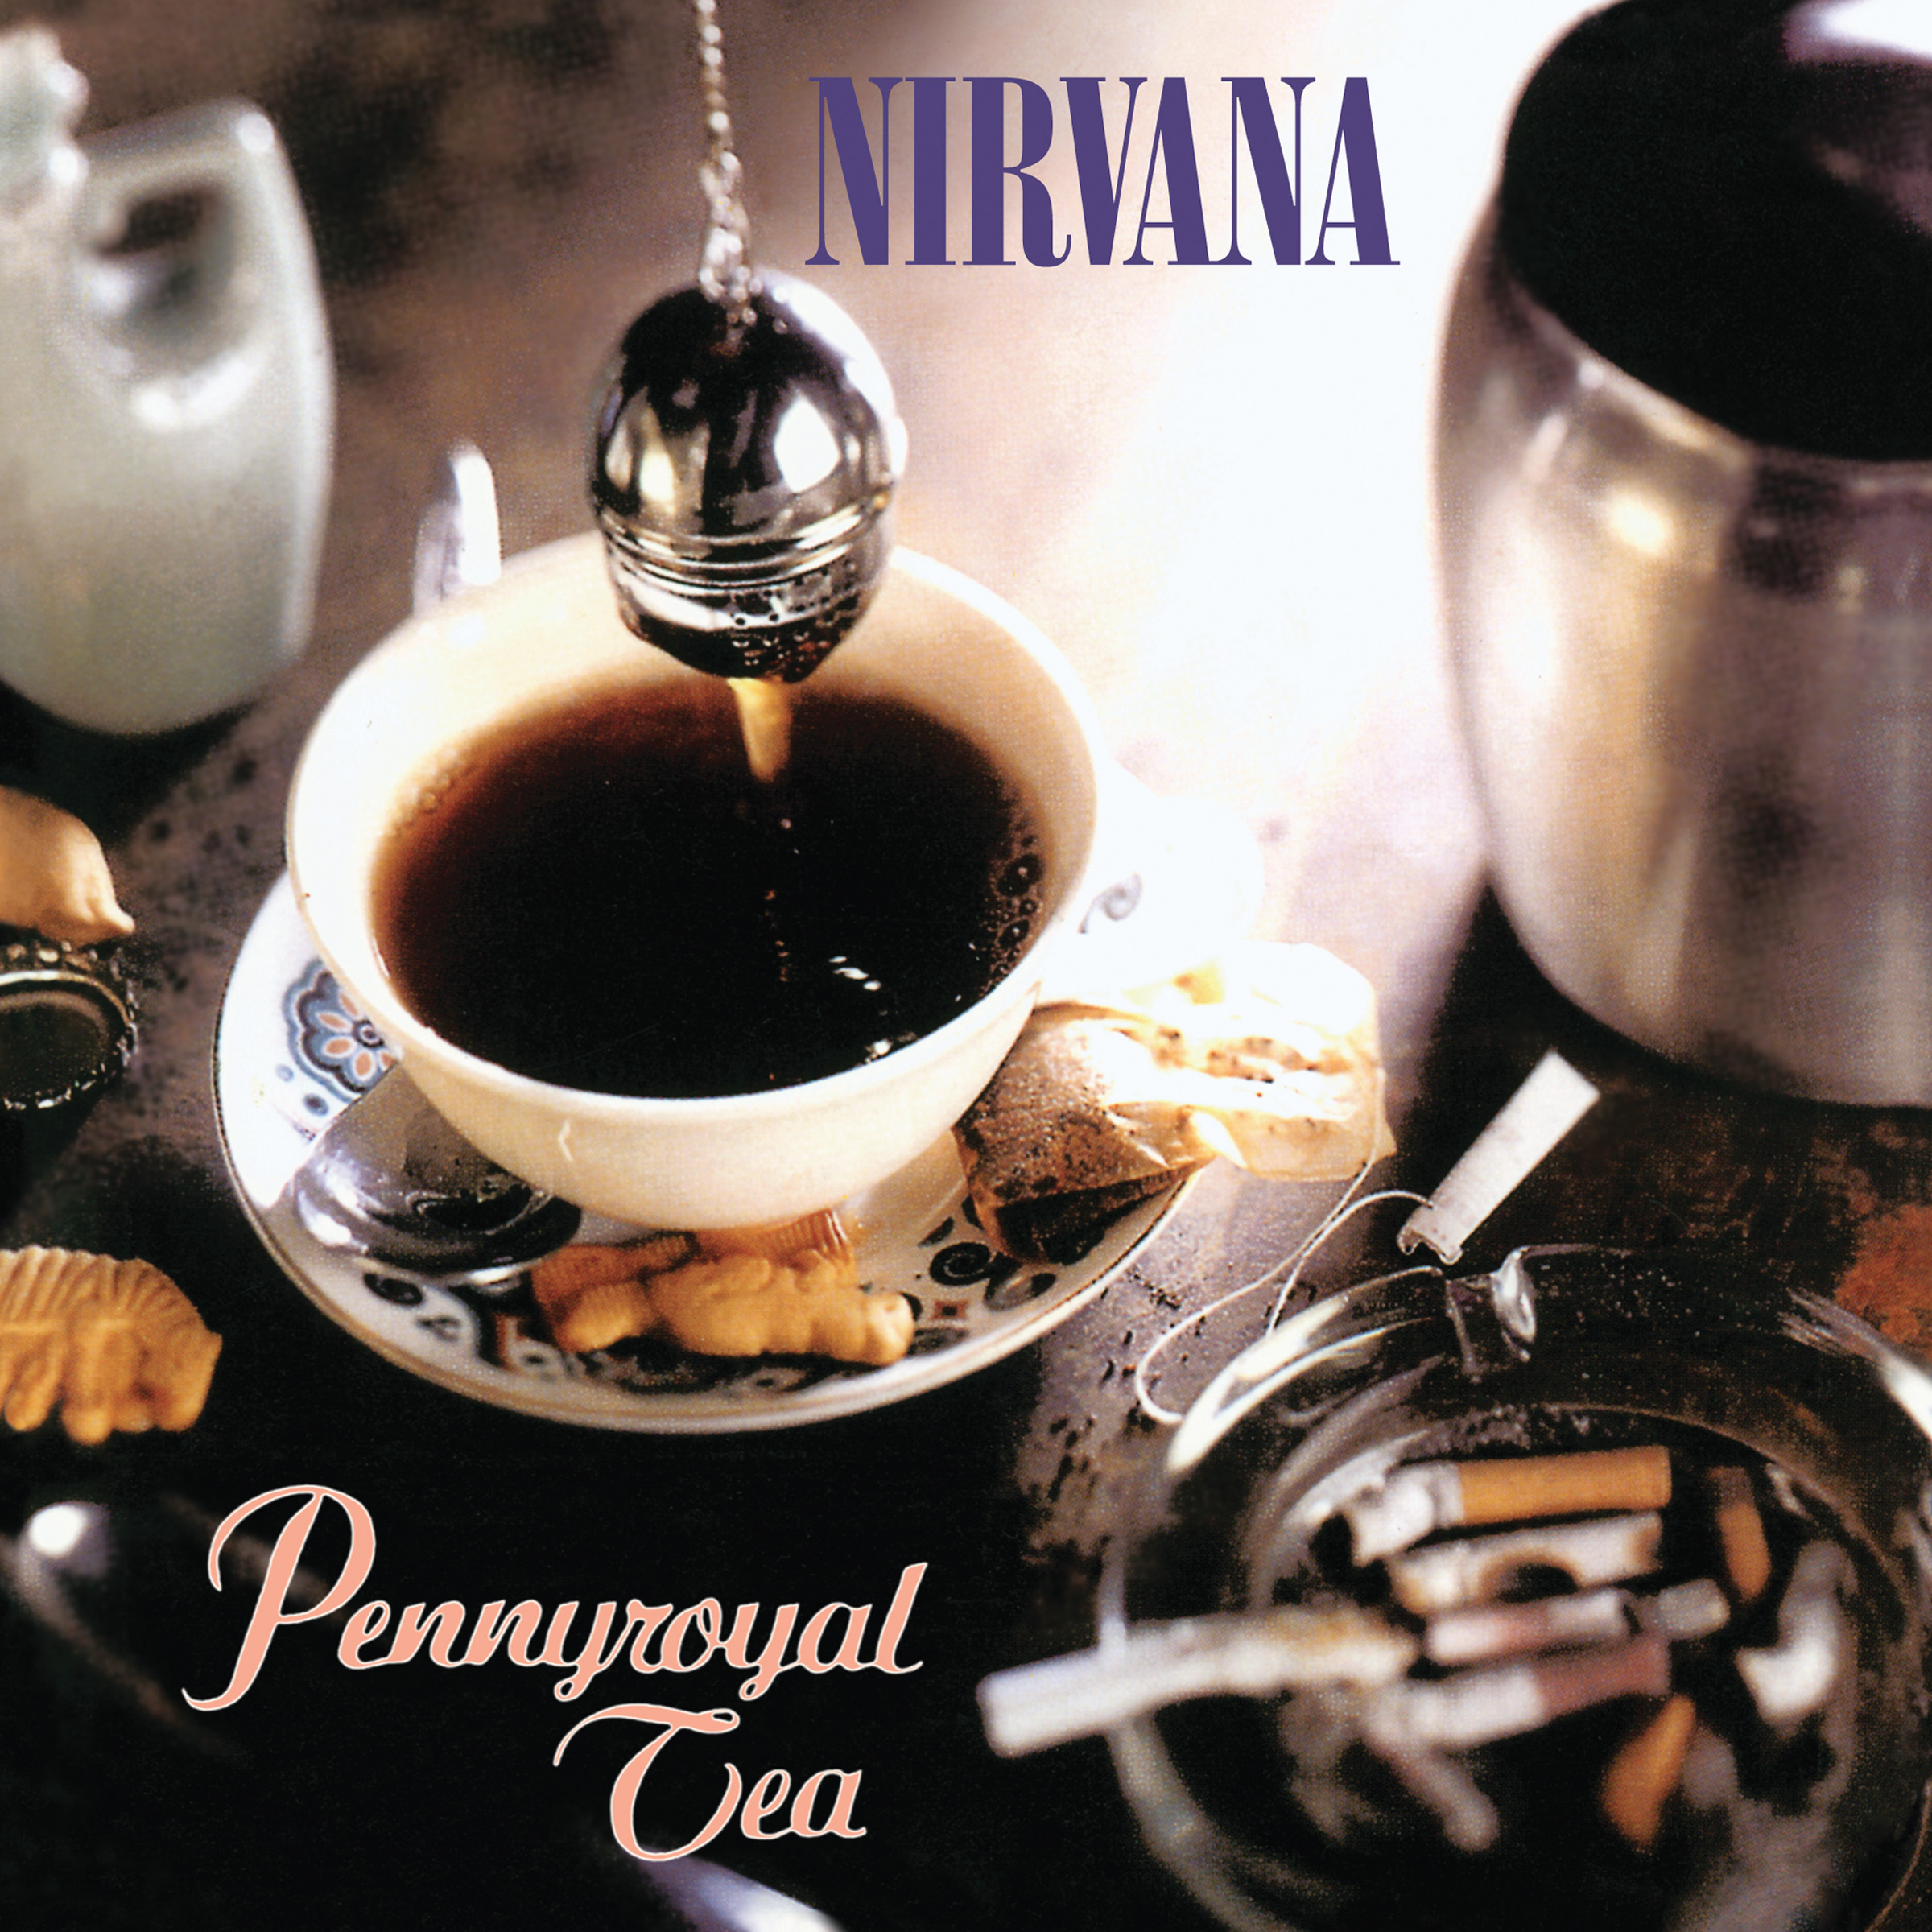 Nirvana - Pennyroyal Tea [Vinyl Single]